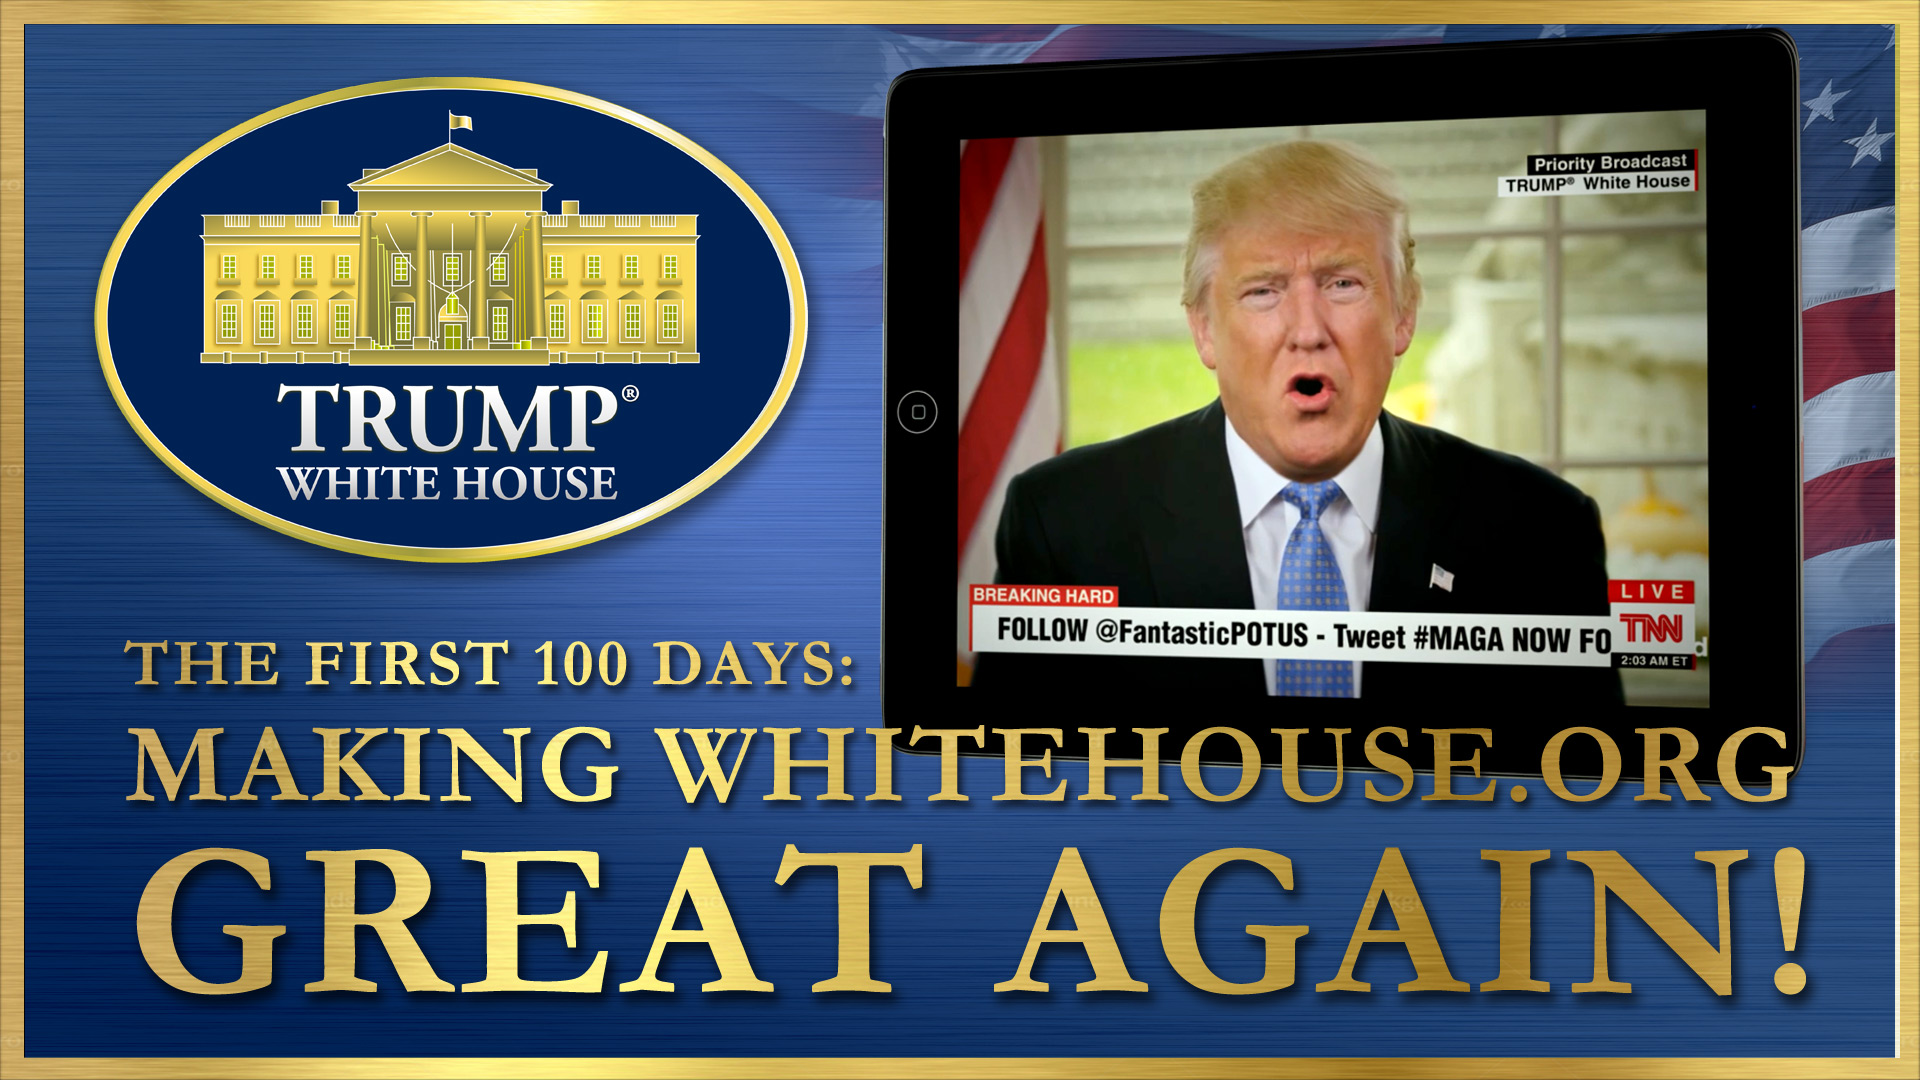 First 100 Days: Making WHITEHOUSE.ORG Great Again!